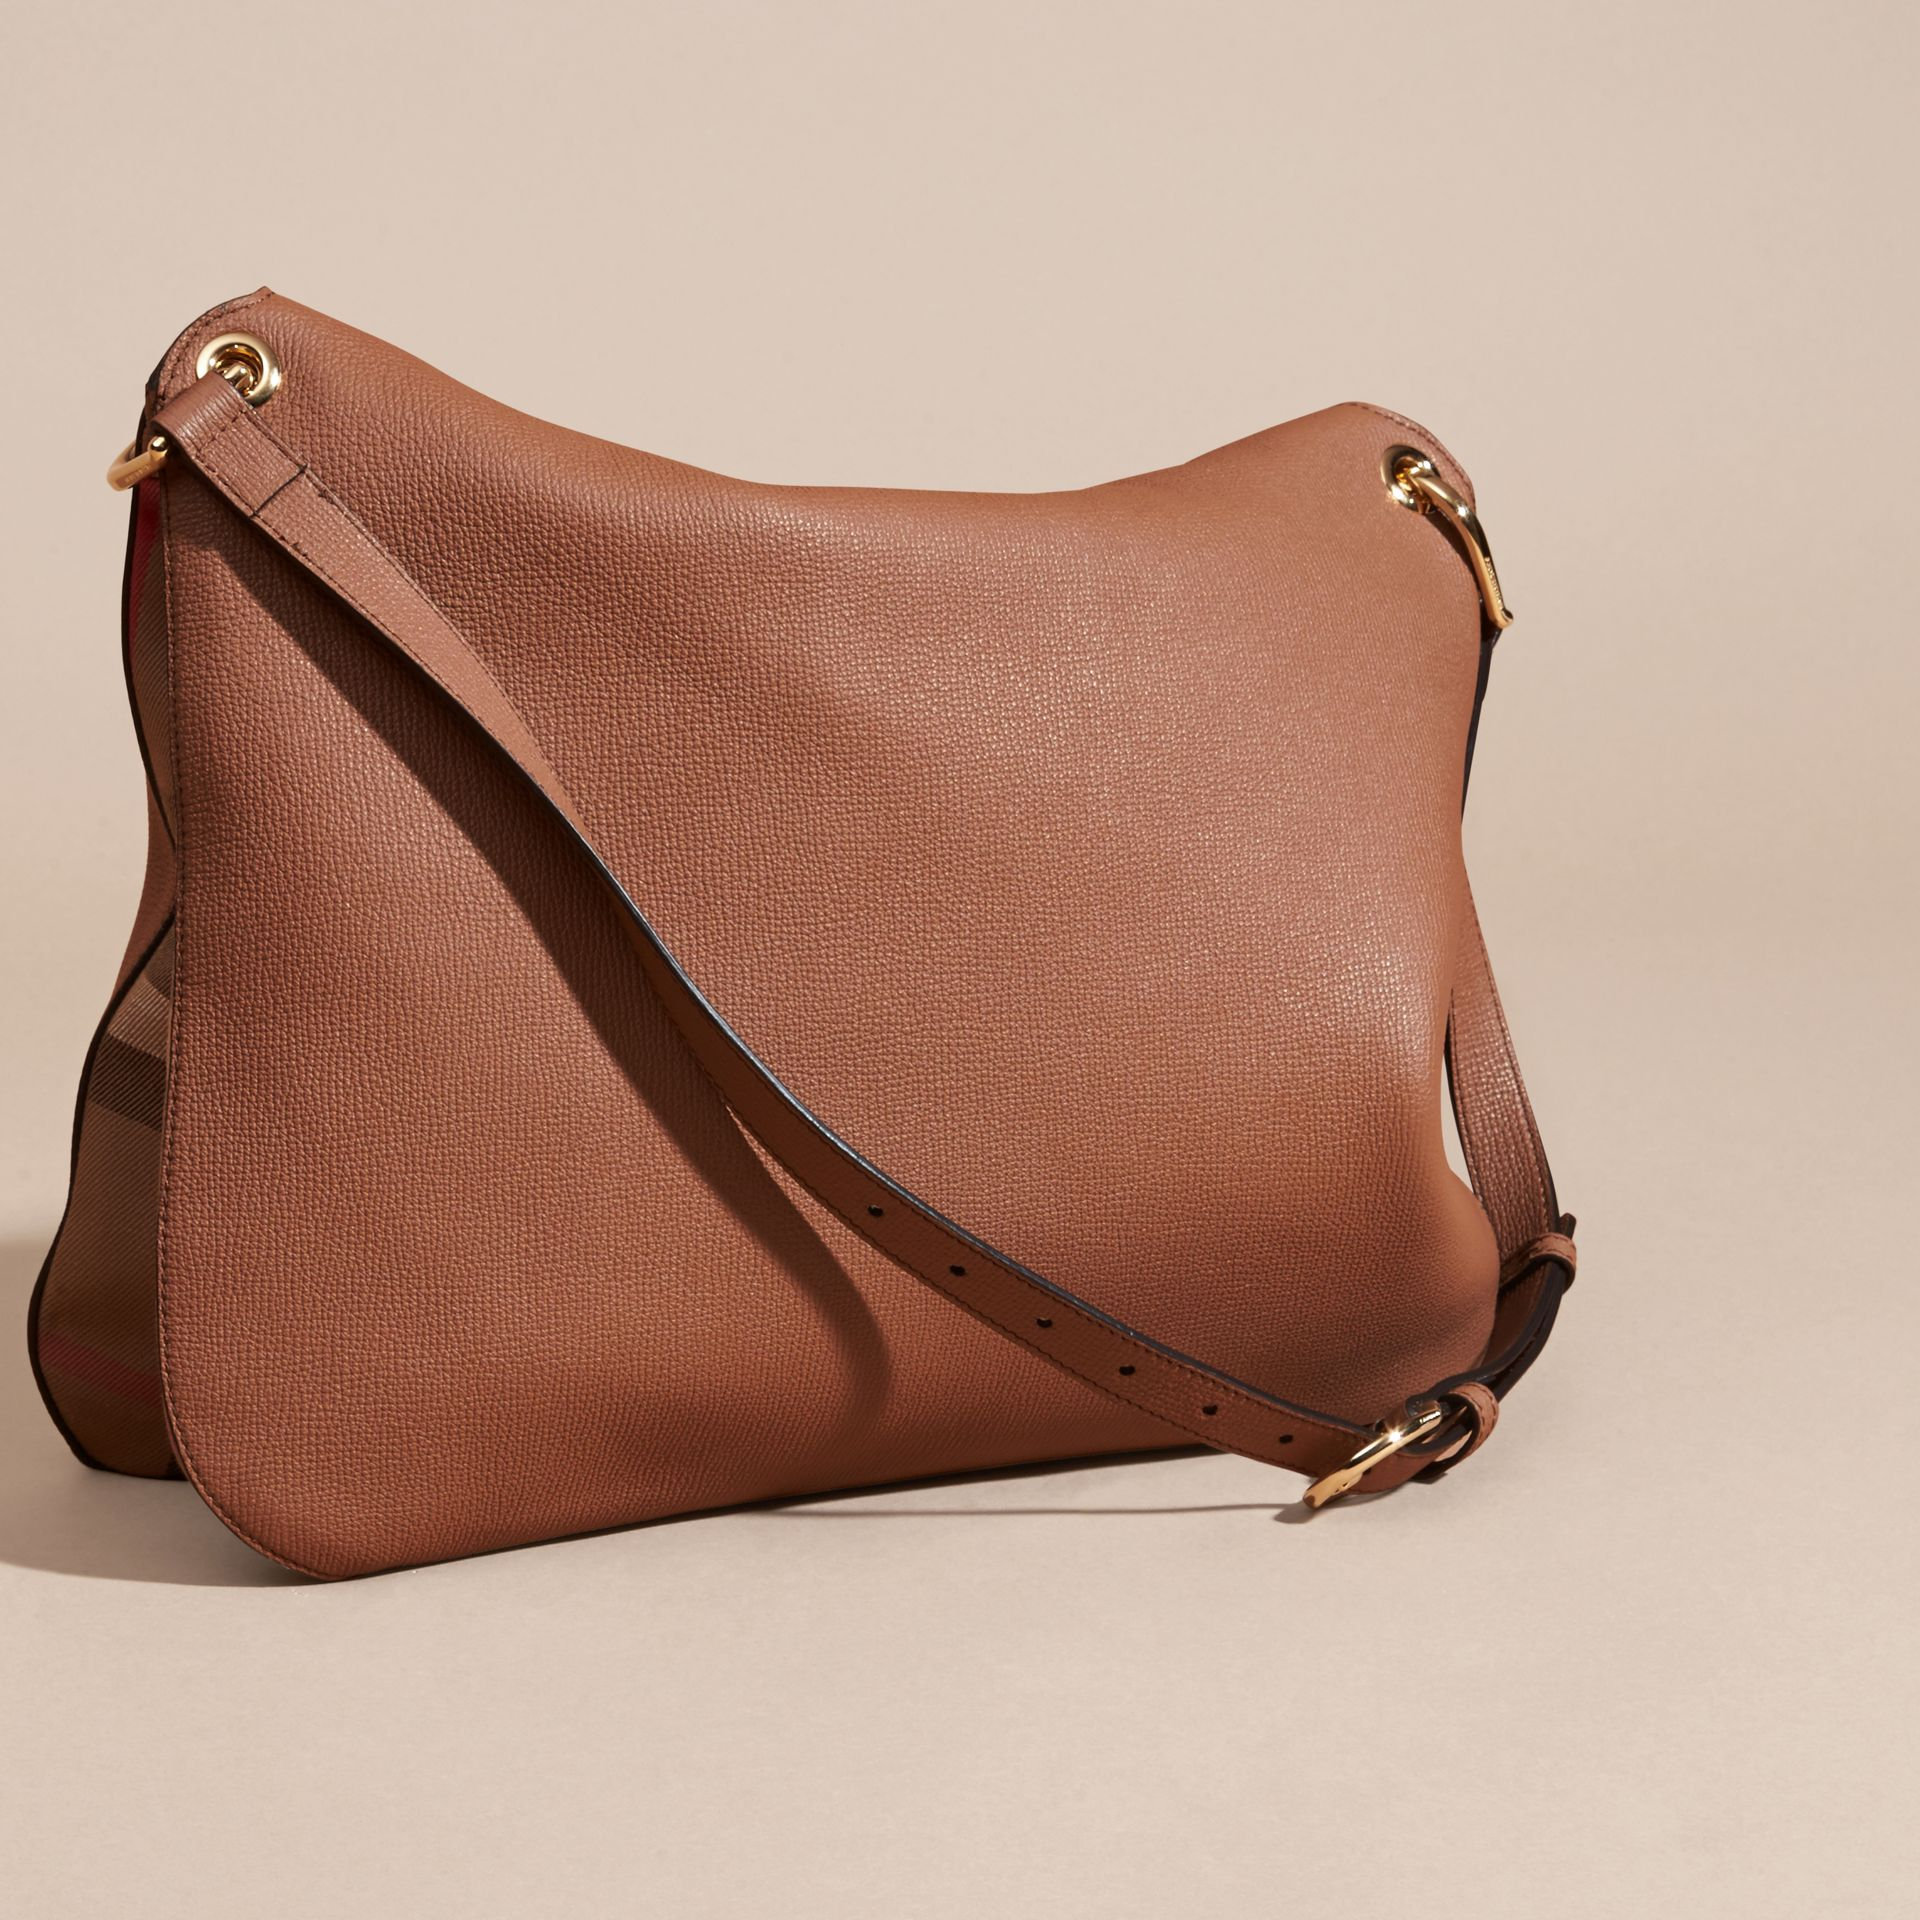 Dark sand Grainy Leather and House Check Shoulder Bag Dark Sand - gallery image 4